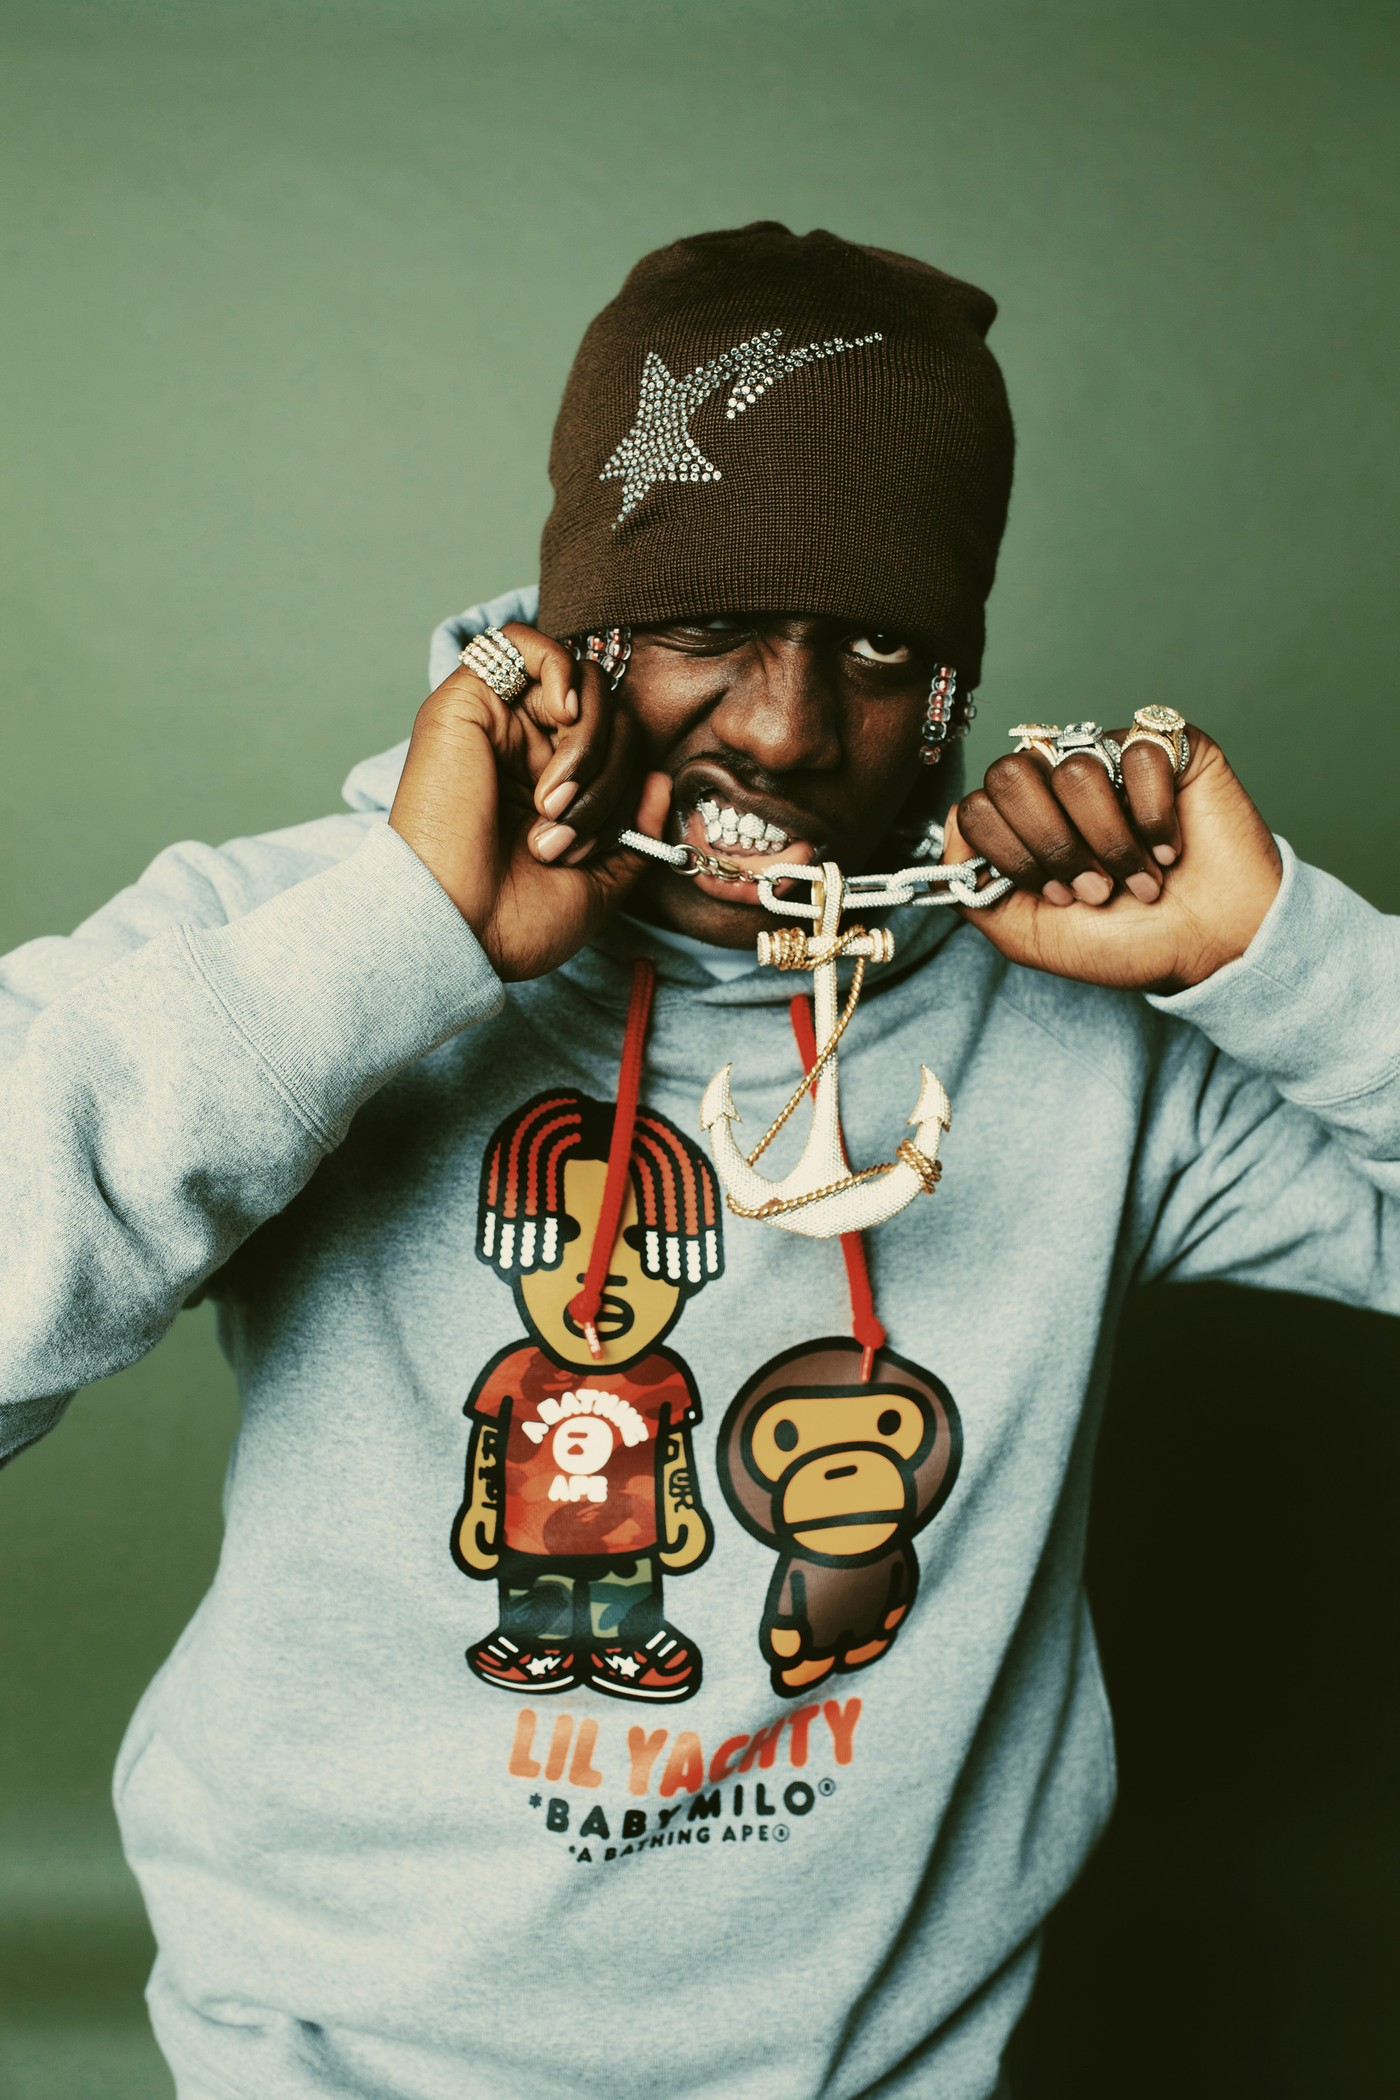 lil yachty bape capsule collection